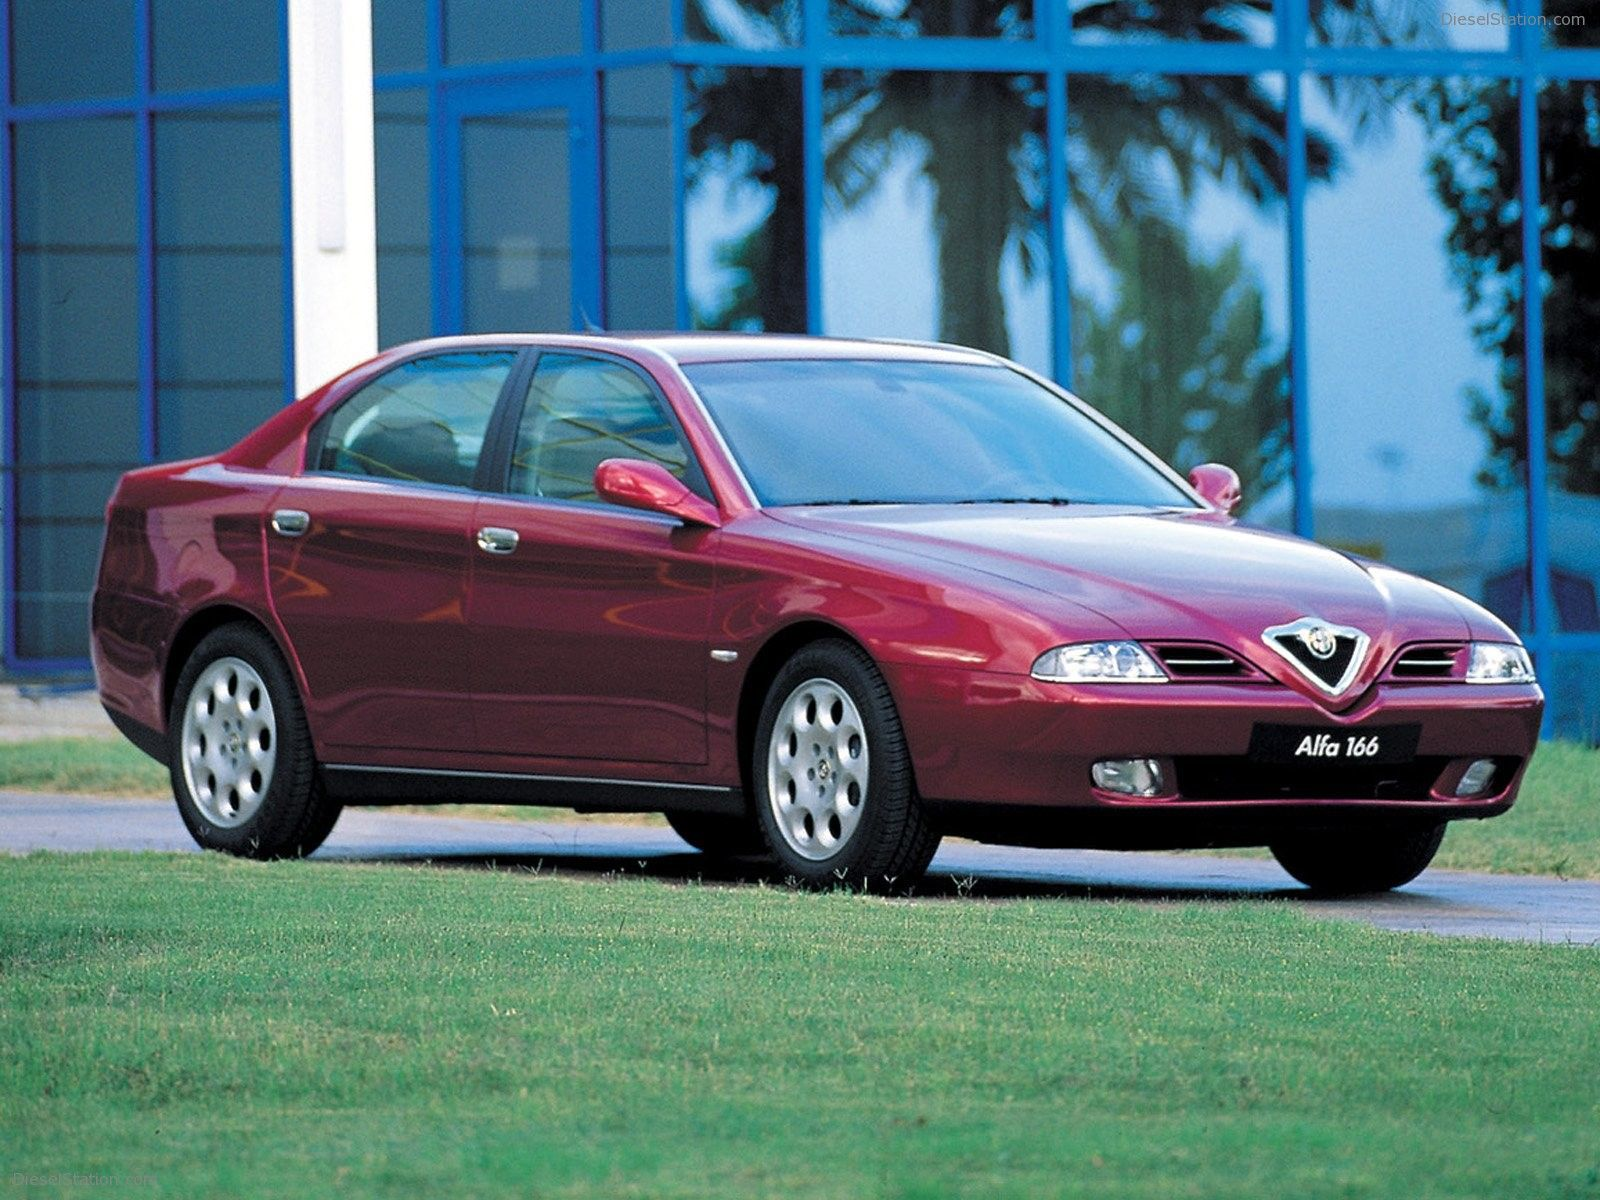 Autocarpedia Com New And Used Cars Online Wallpapers Alfa Romeo Alfa Romeo Cars Used Cars Online